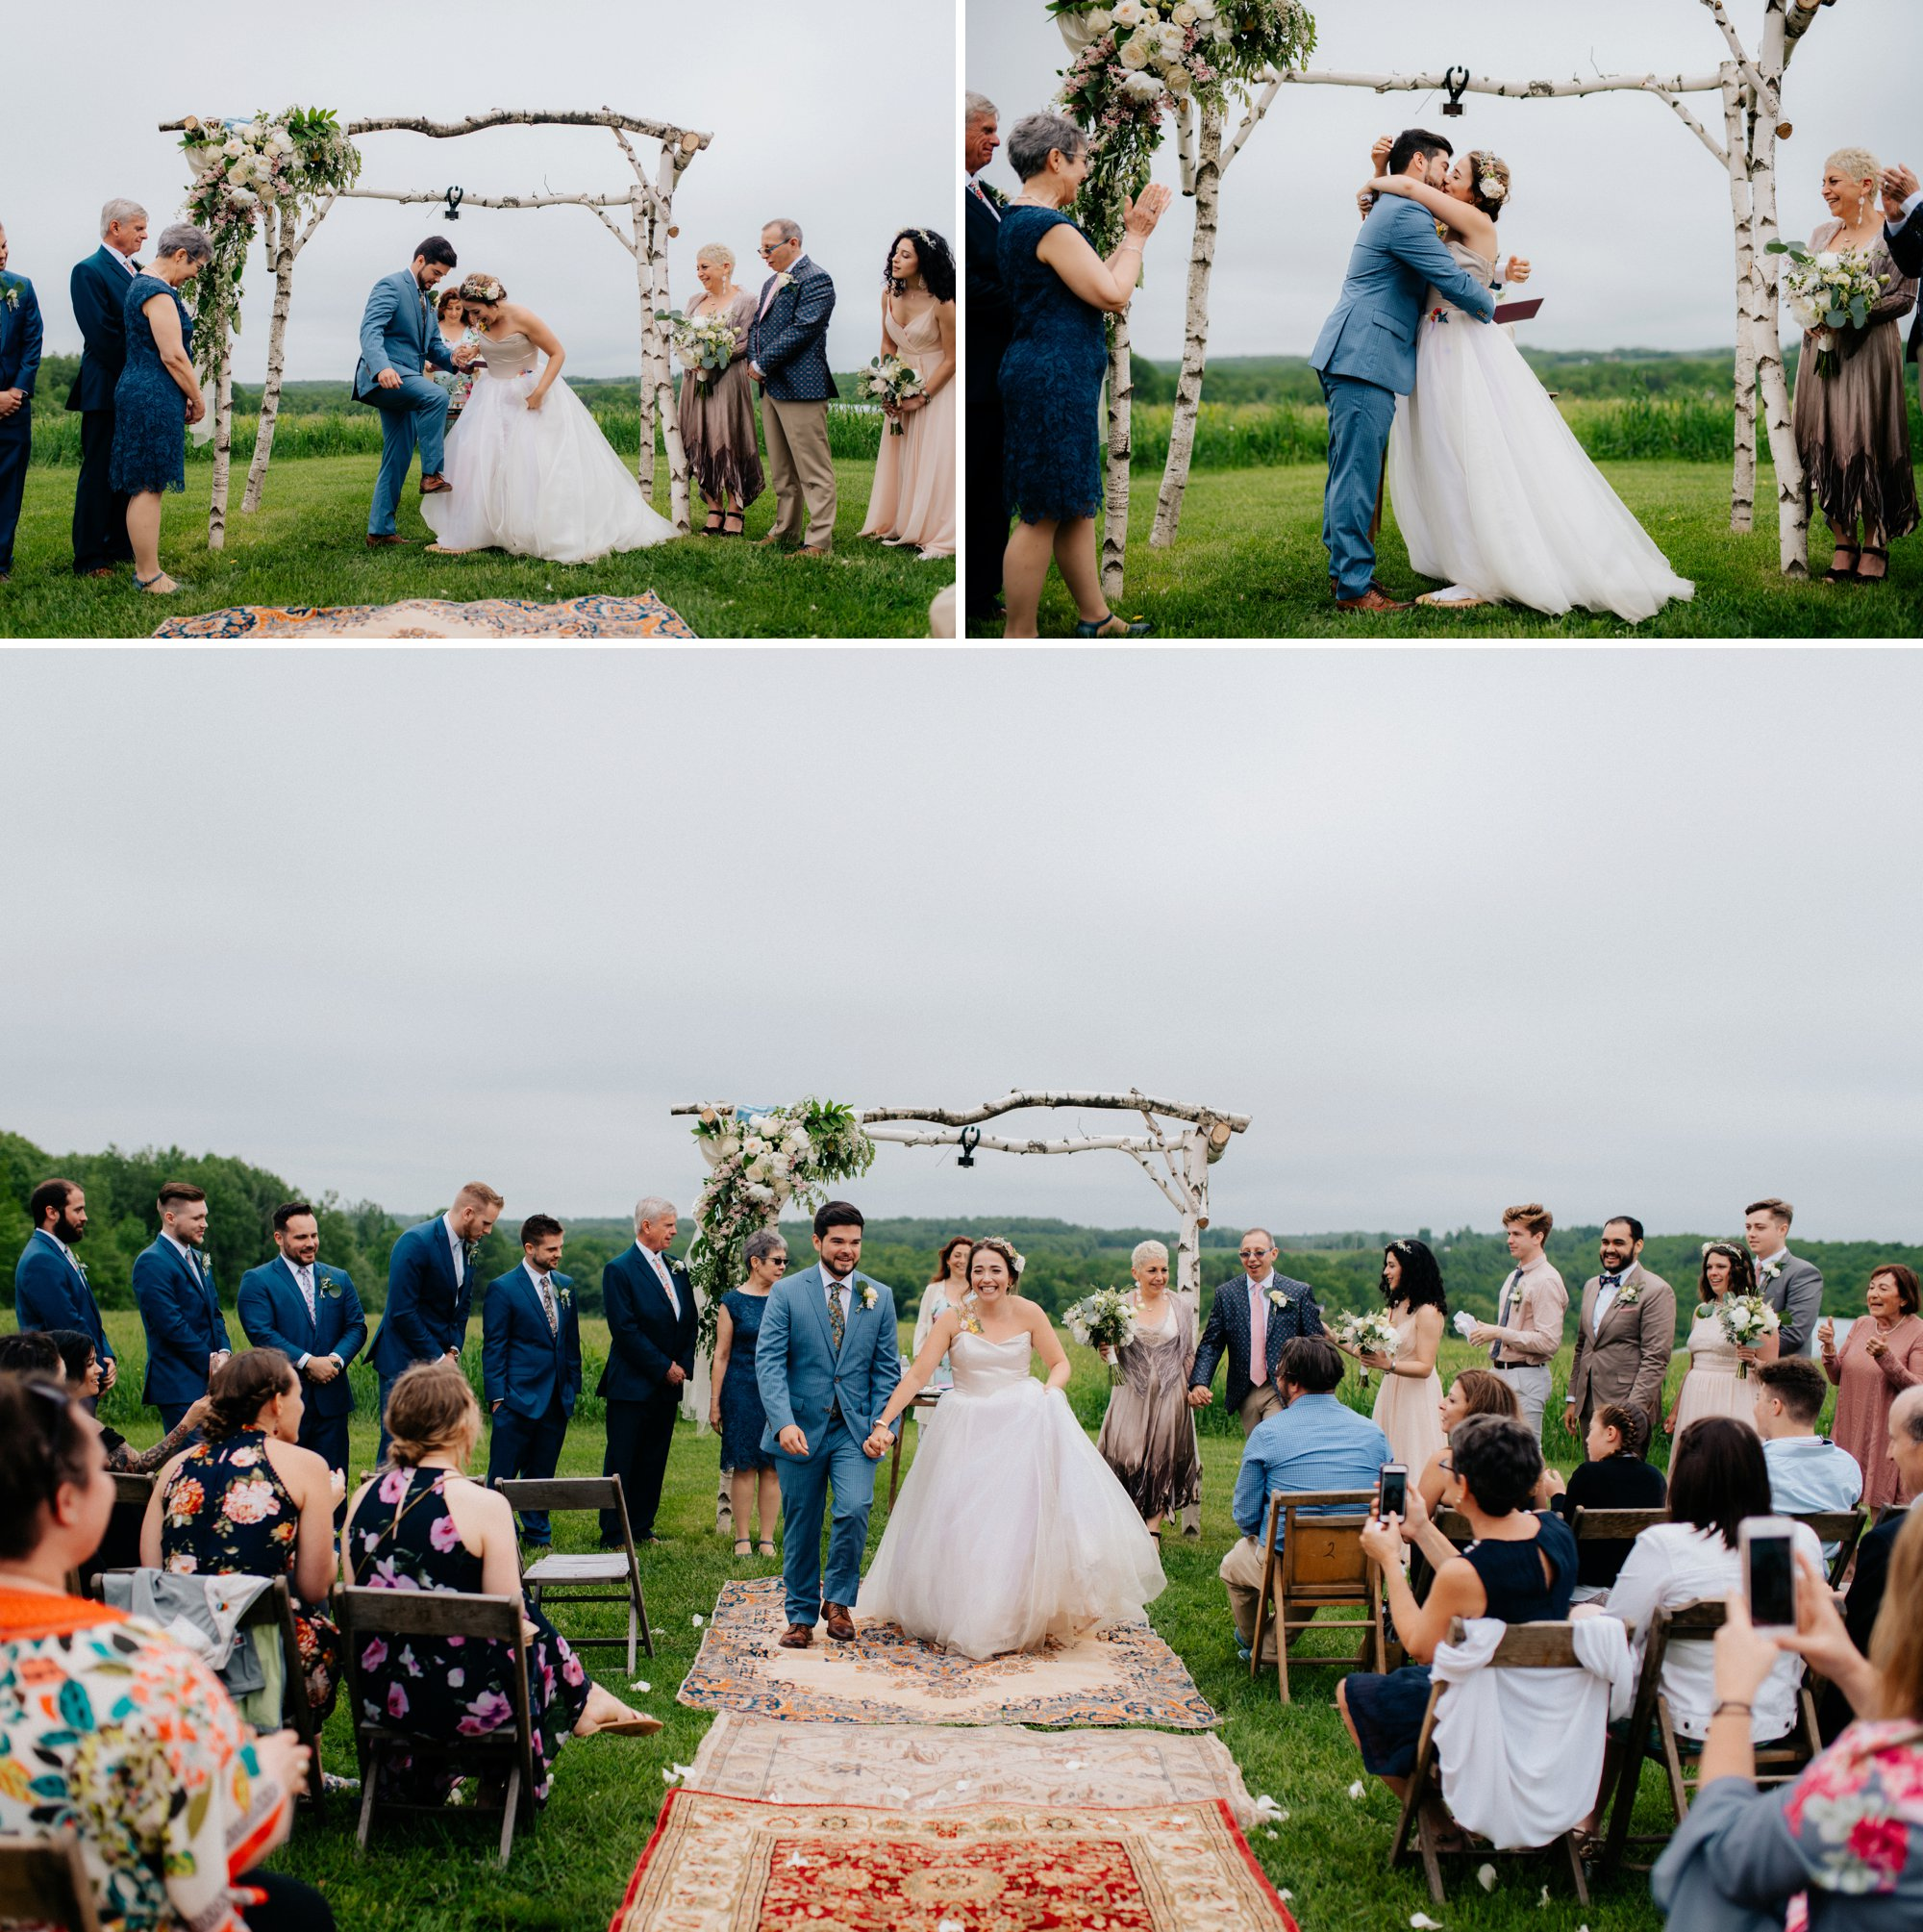 Fiddle Lake Farm Philadelphia Pennsylvania Misty Rustic Wedding with Lush Florals Recessional